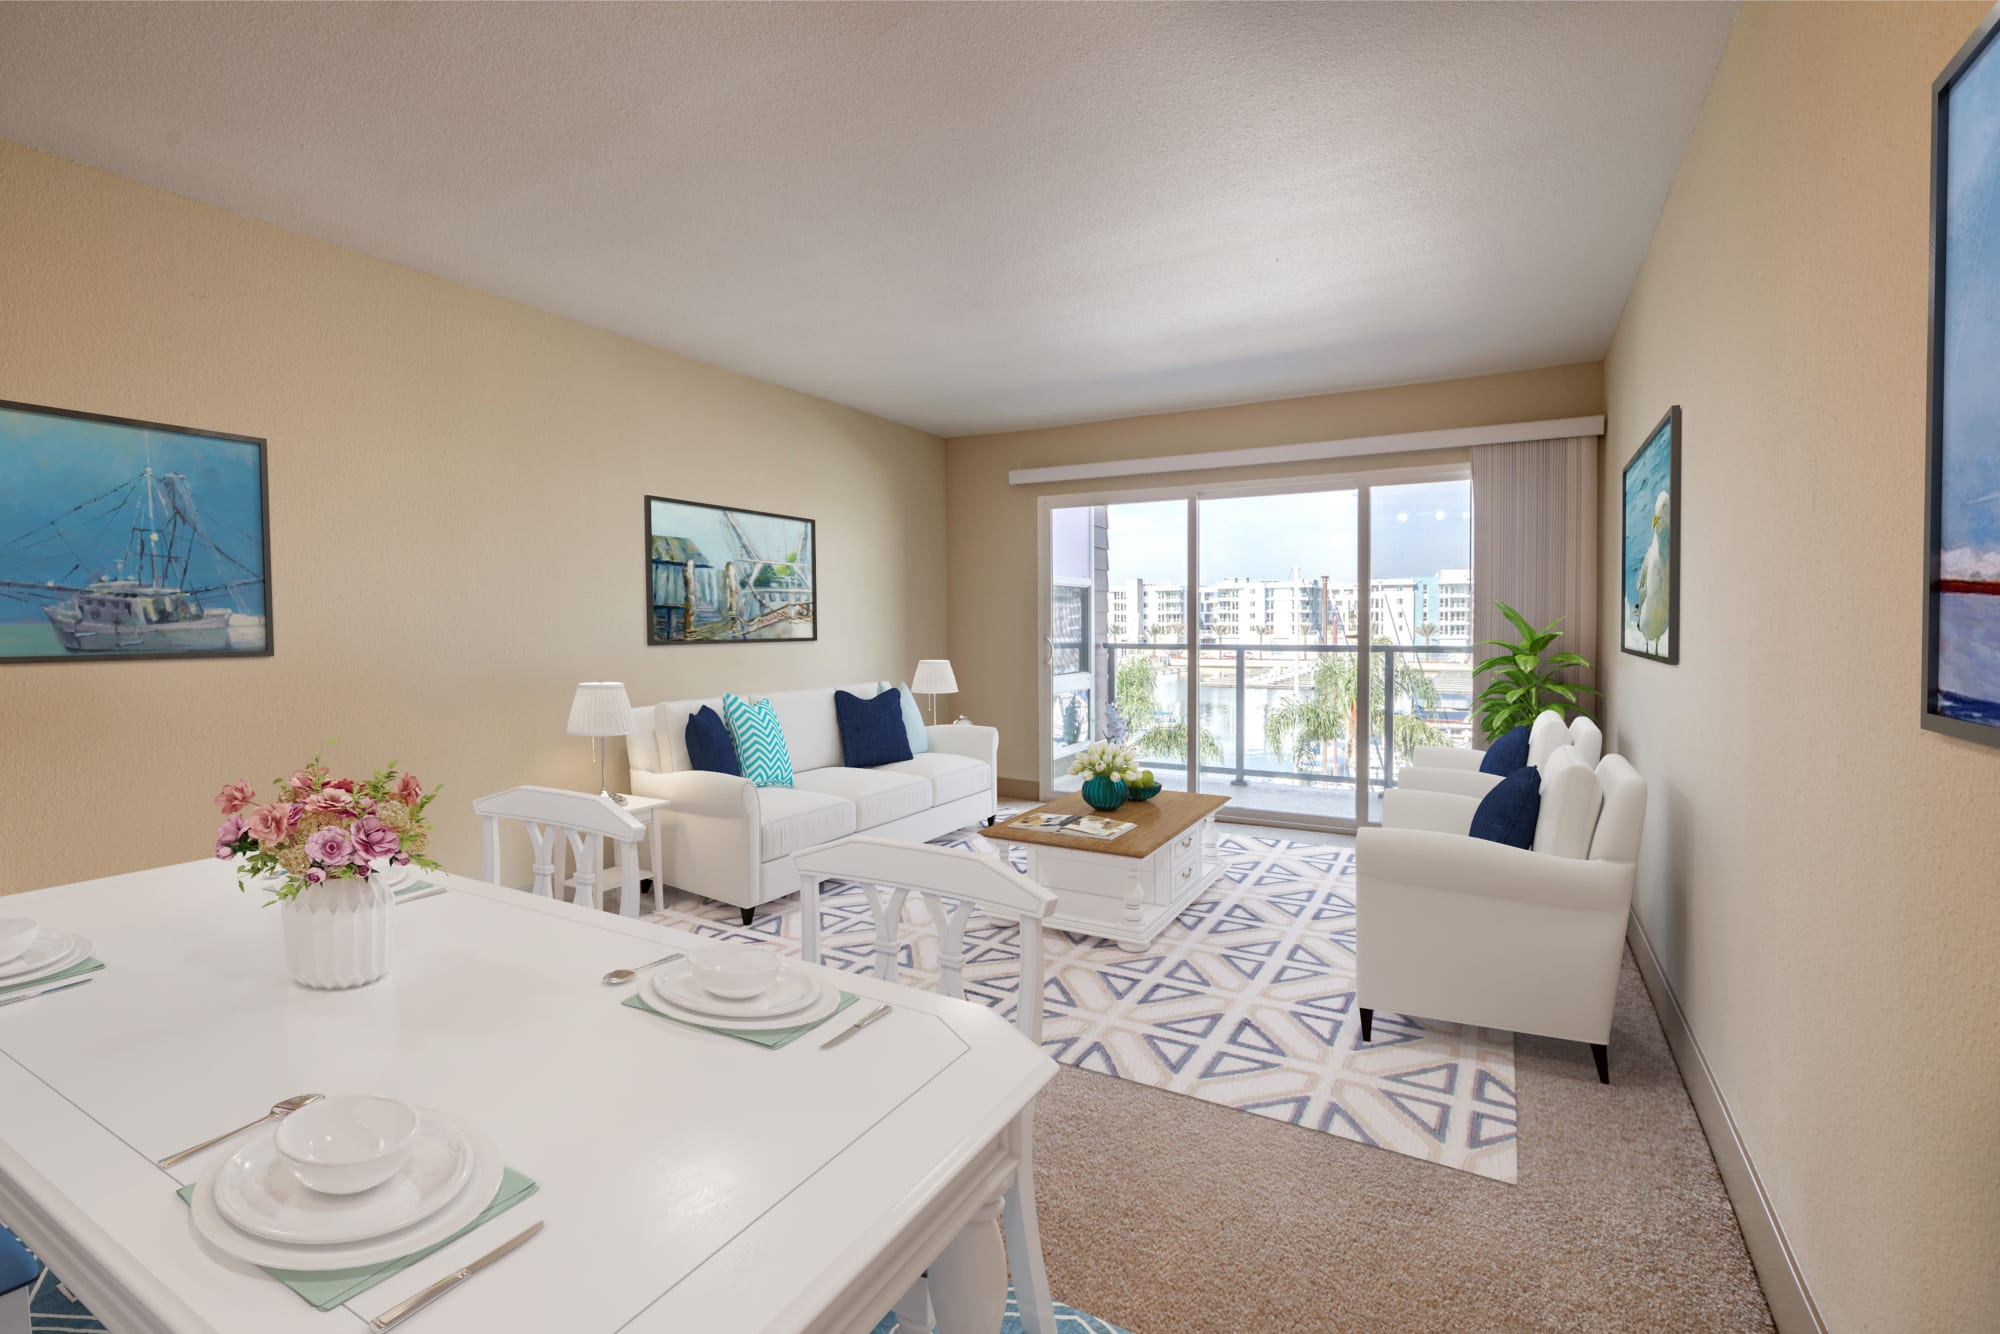 Washer and dryer in units at Harborside Marina Bay Apartments in Marina del Rey, California